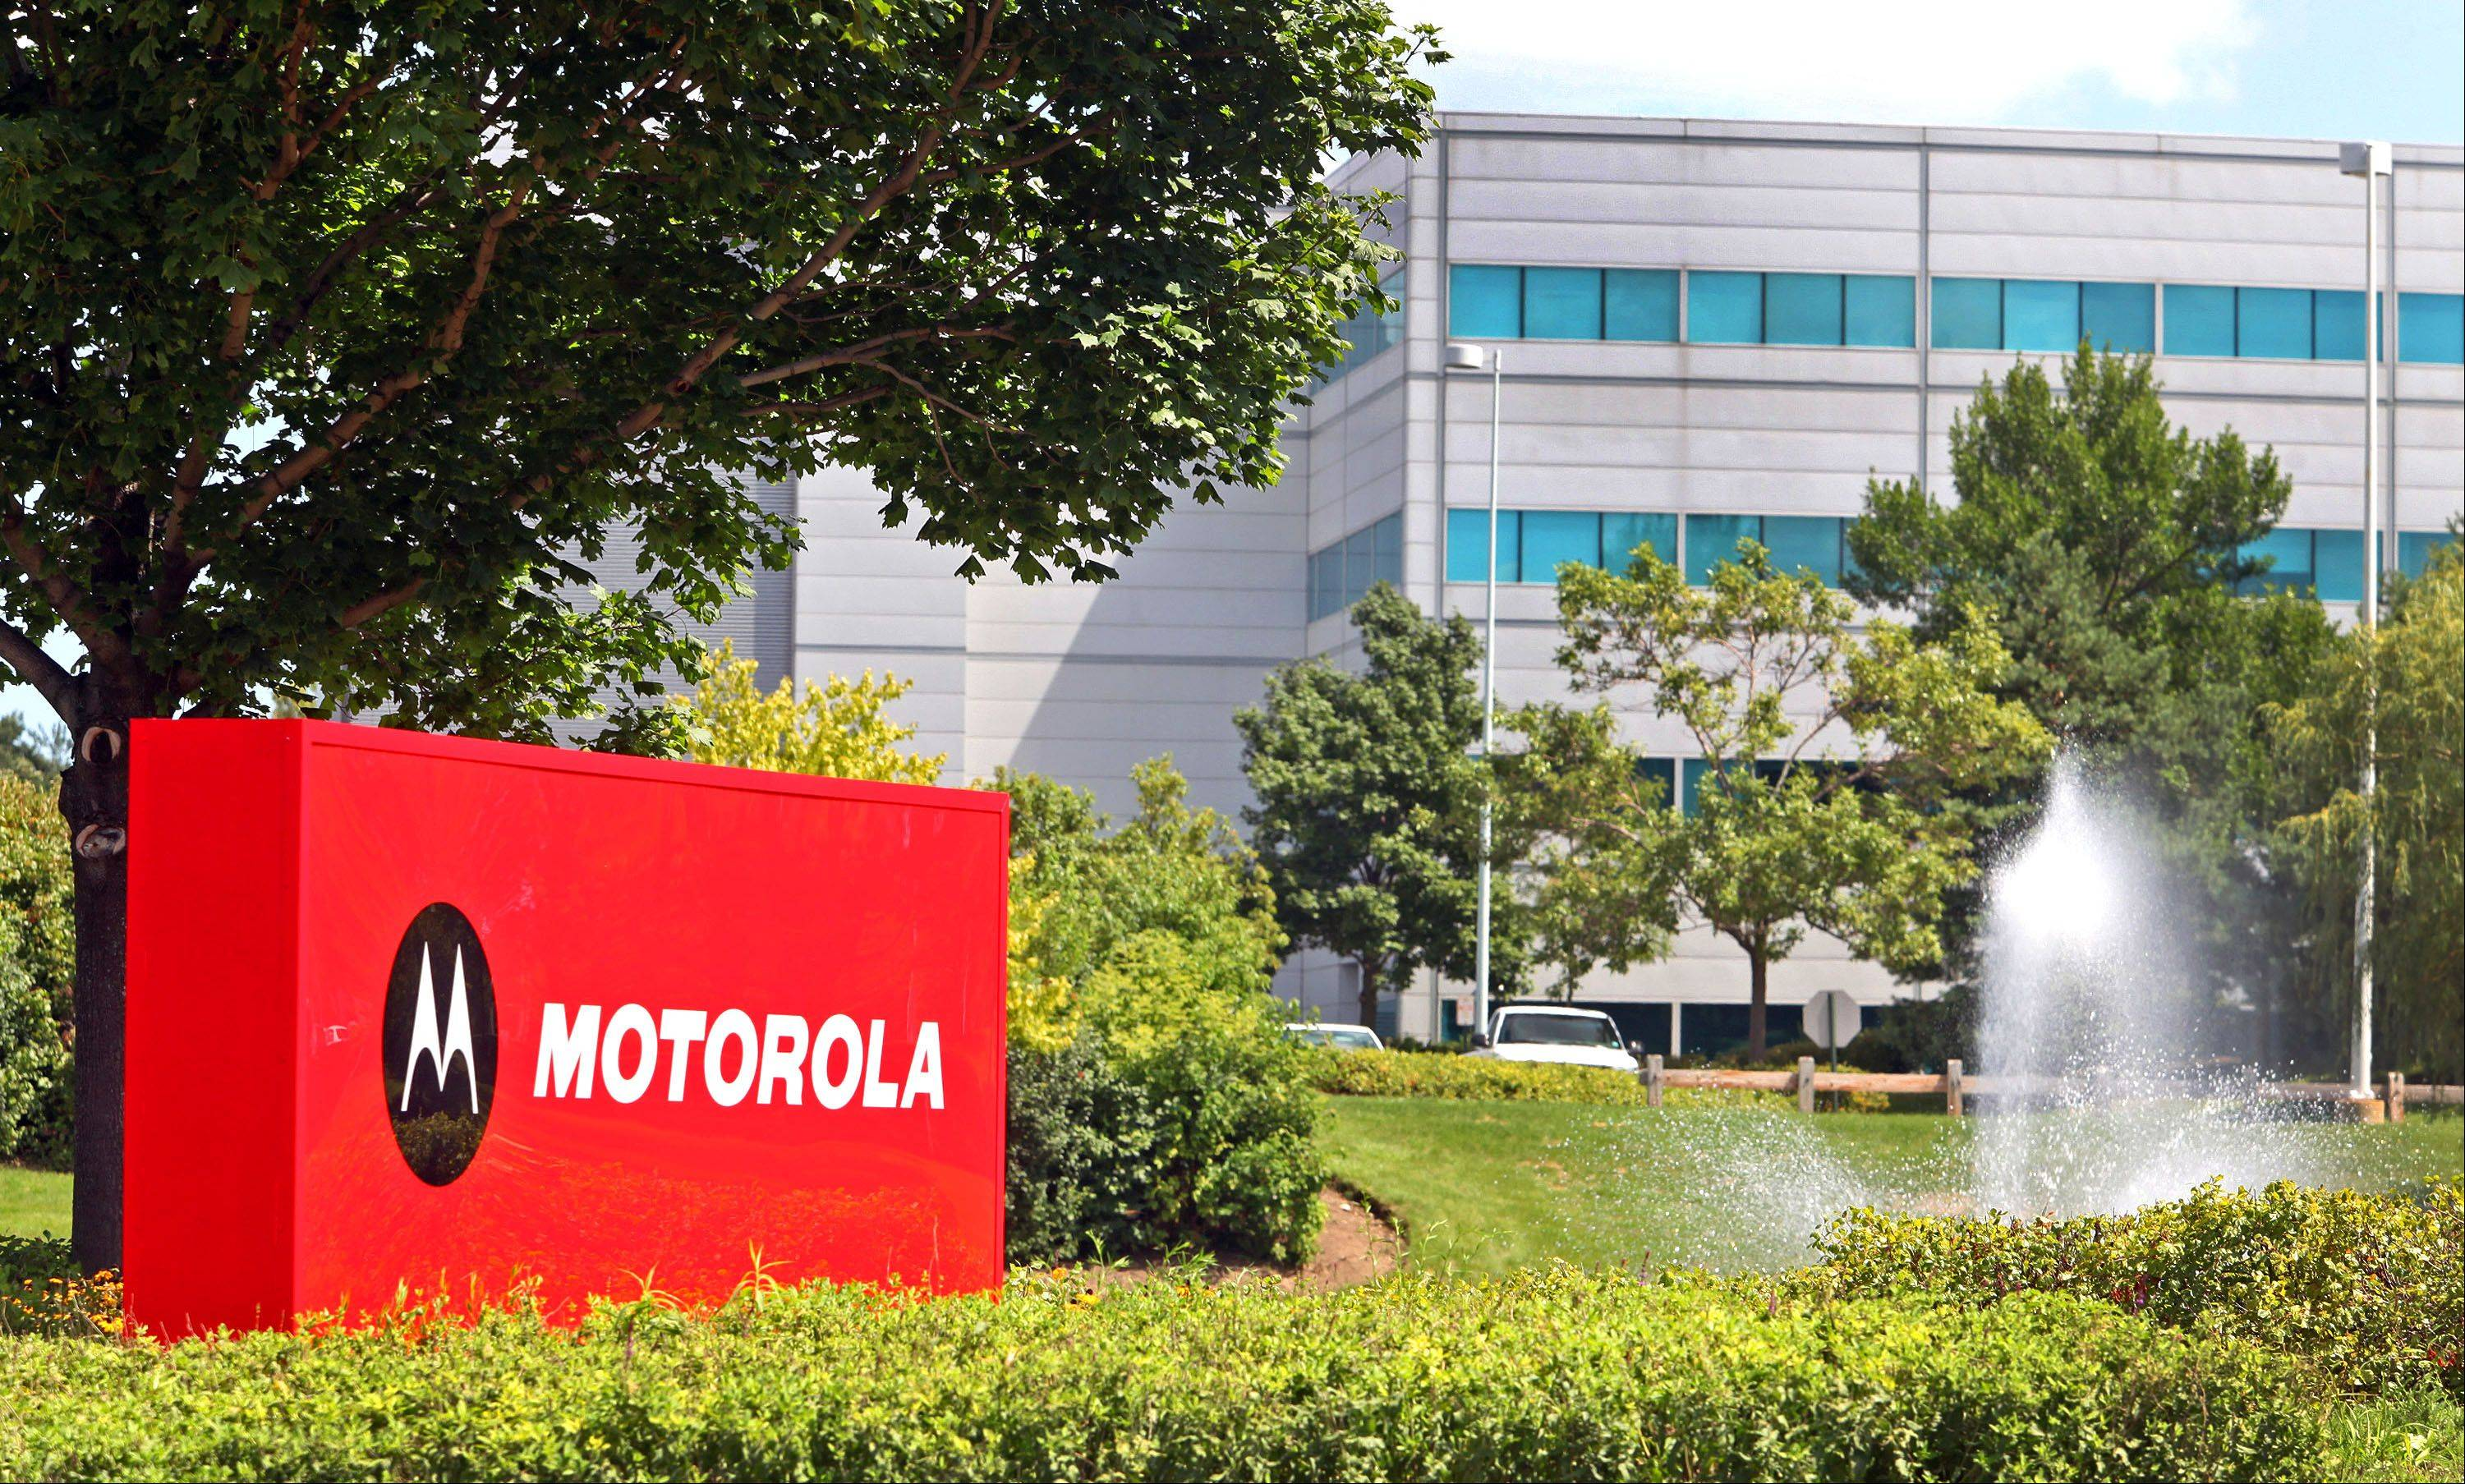 Google Inc. wants to sell Motorola Mobility�s headquarters off Route 45 in Libertyville. Motorola Mobility plans to move its entire workforce from Libertyville to the Merchandise Mart in downtown Chicago by late this year.